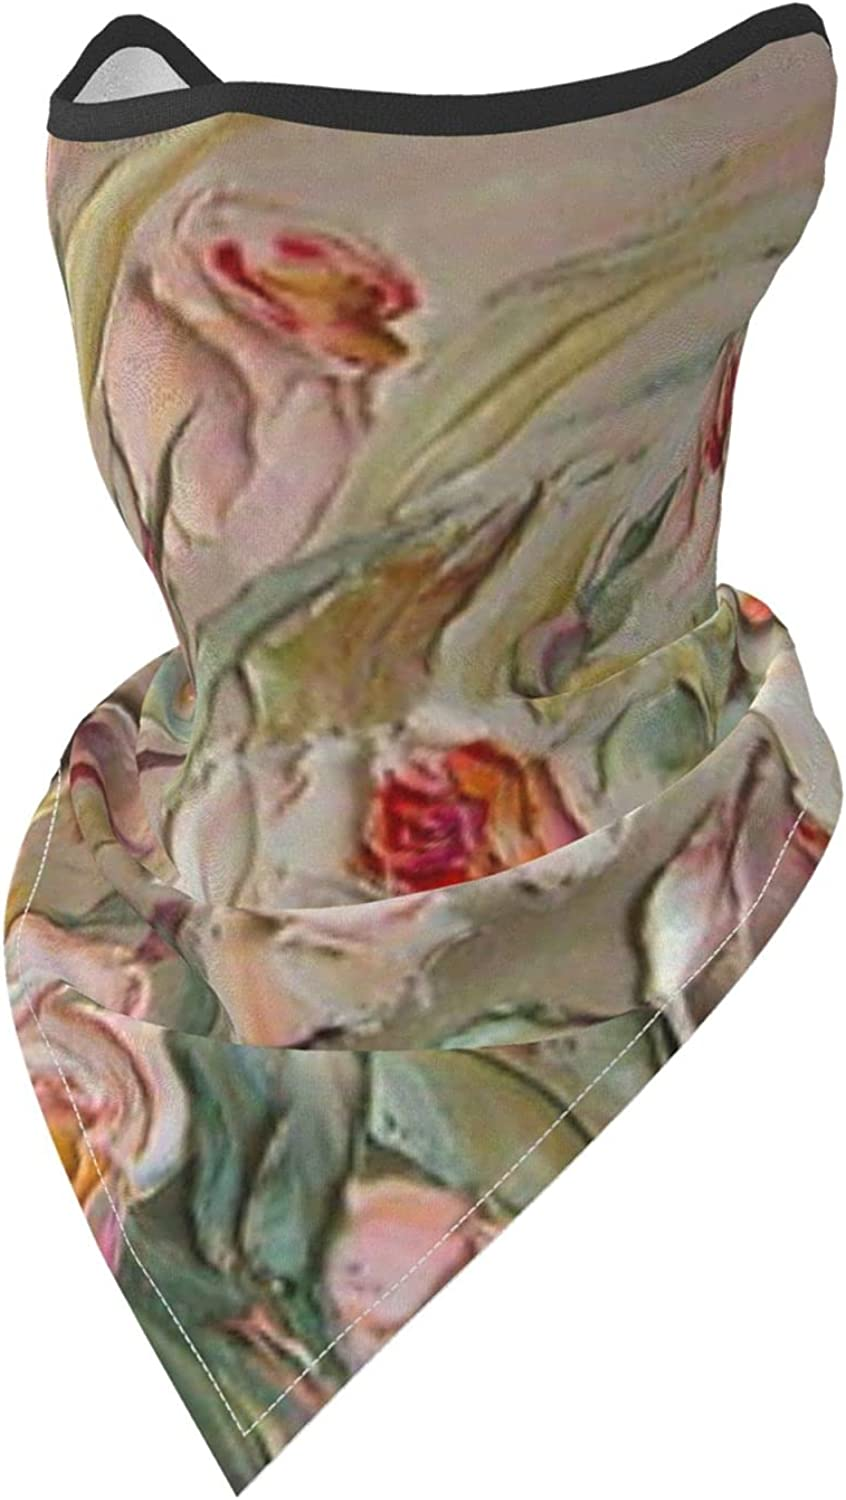 Roses Pink Flowers Oil Painting Breathable Bandana Face Mask Neck Gaiter Windproof Sports Mask Scarf Headwear for Men Women Outdoor Hiking Cycling Running Motorcycling